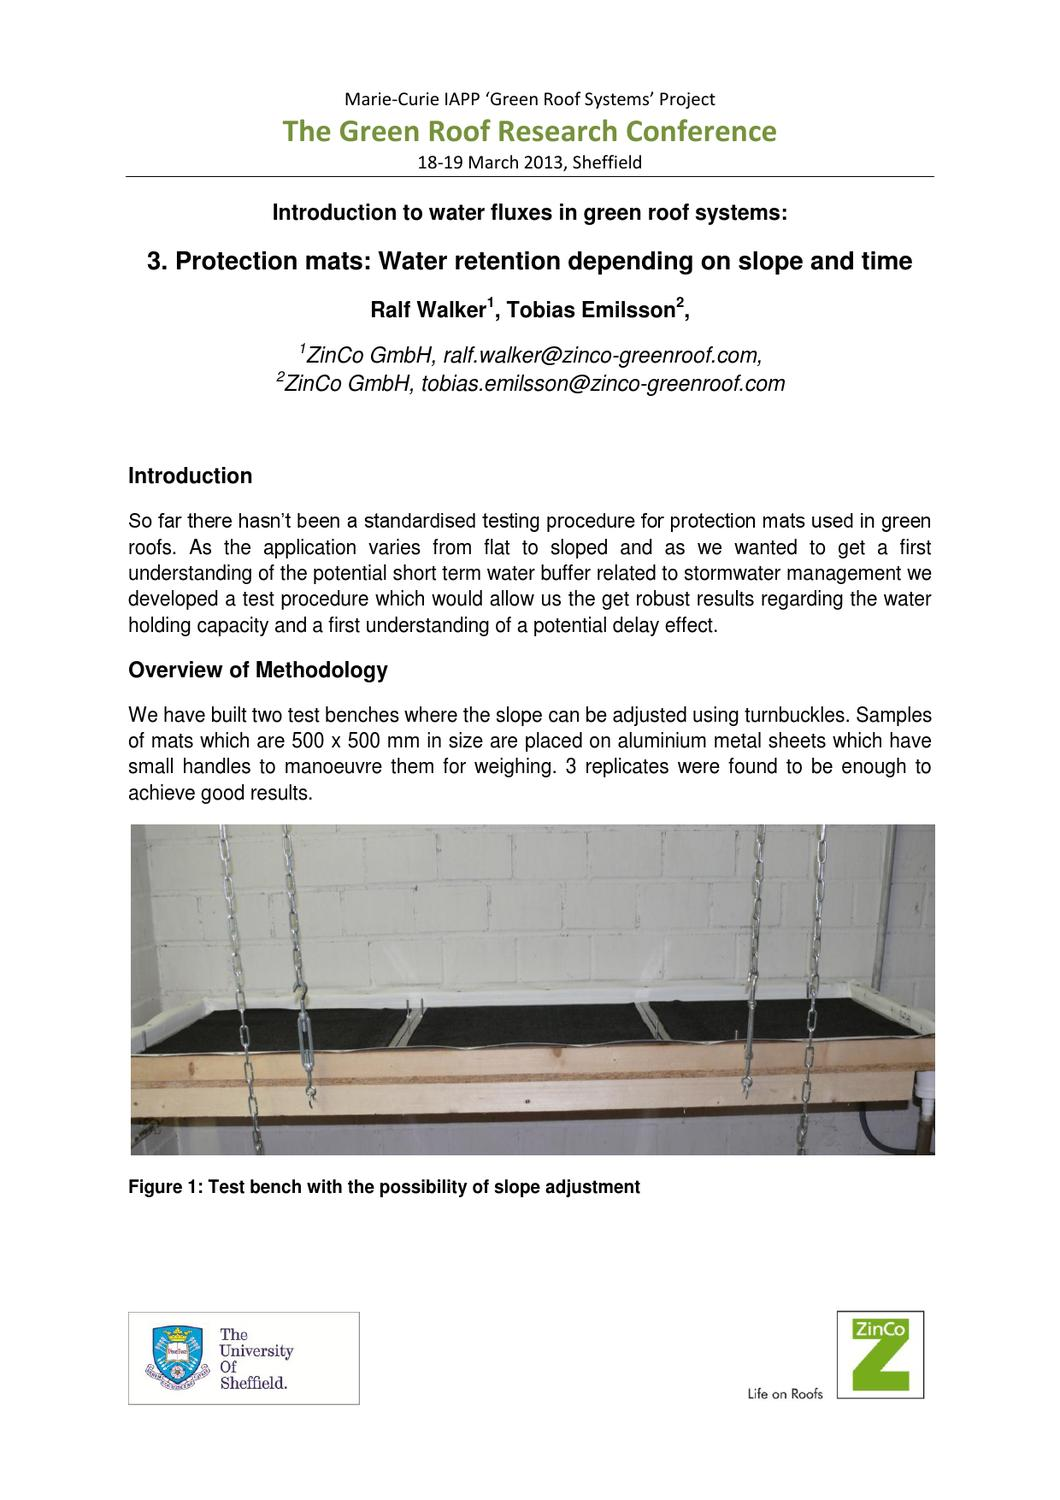 Introduction To Water Gardening: Introduction To Water Fluxes In Green Roof Systems 3